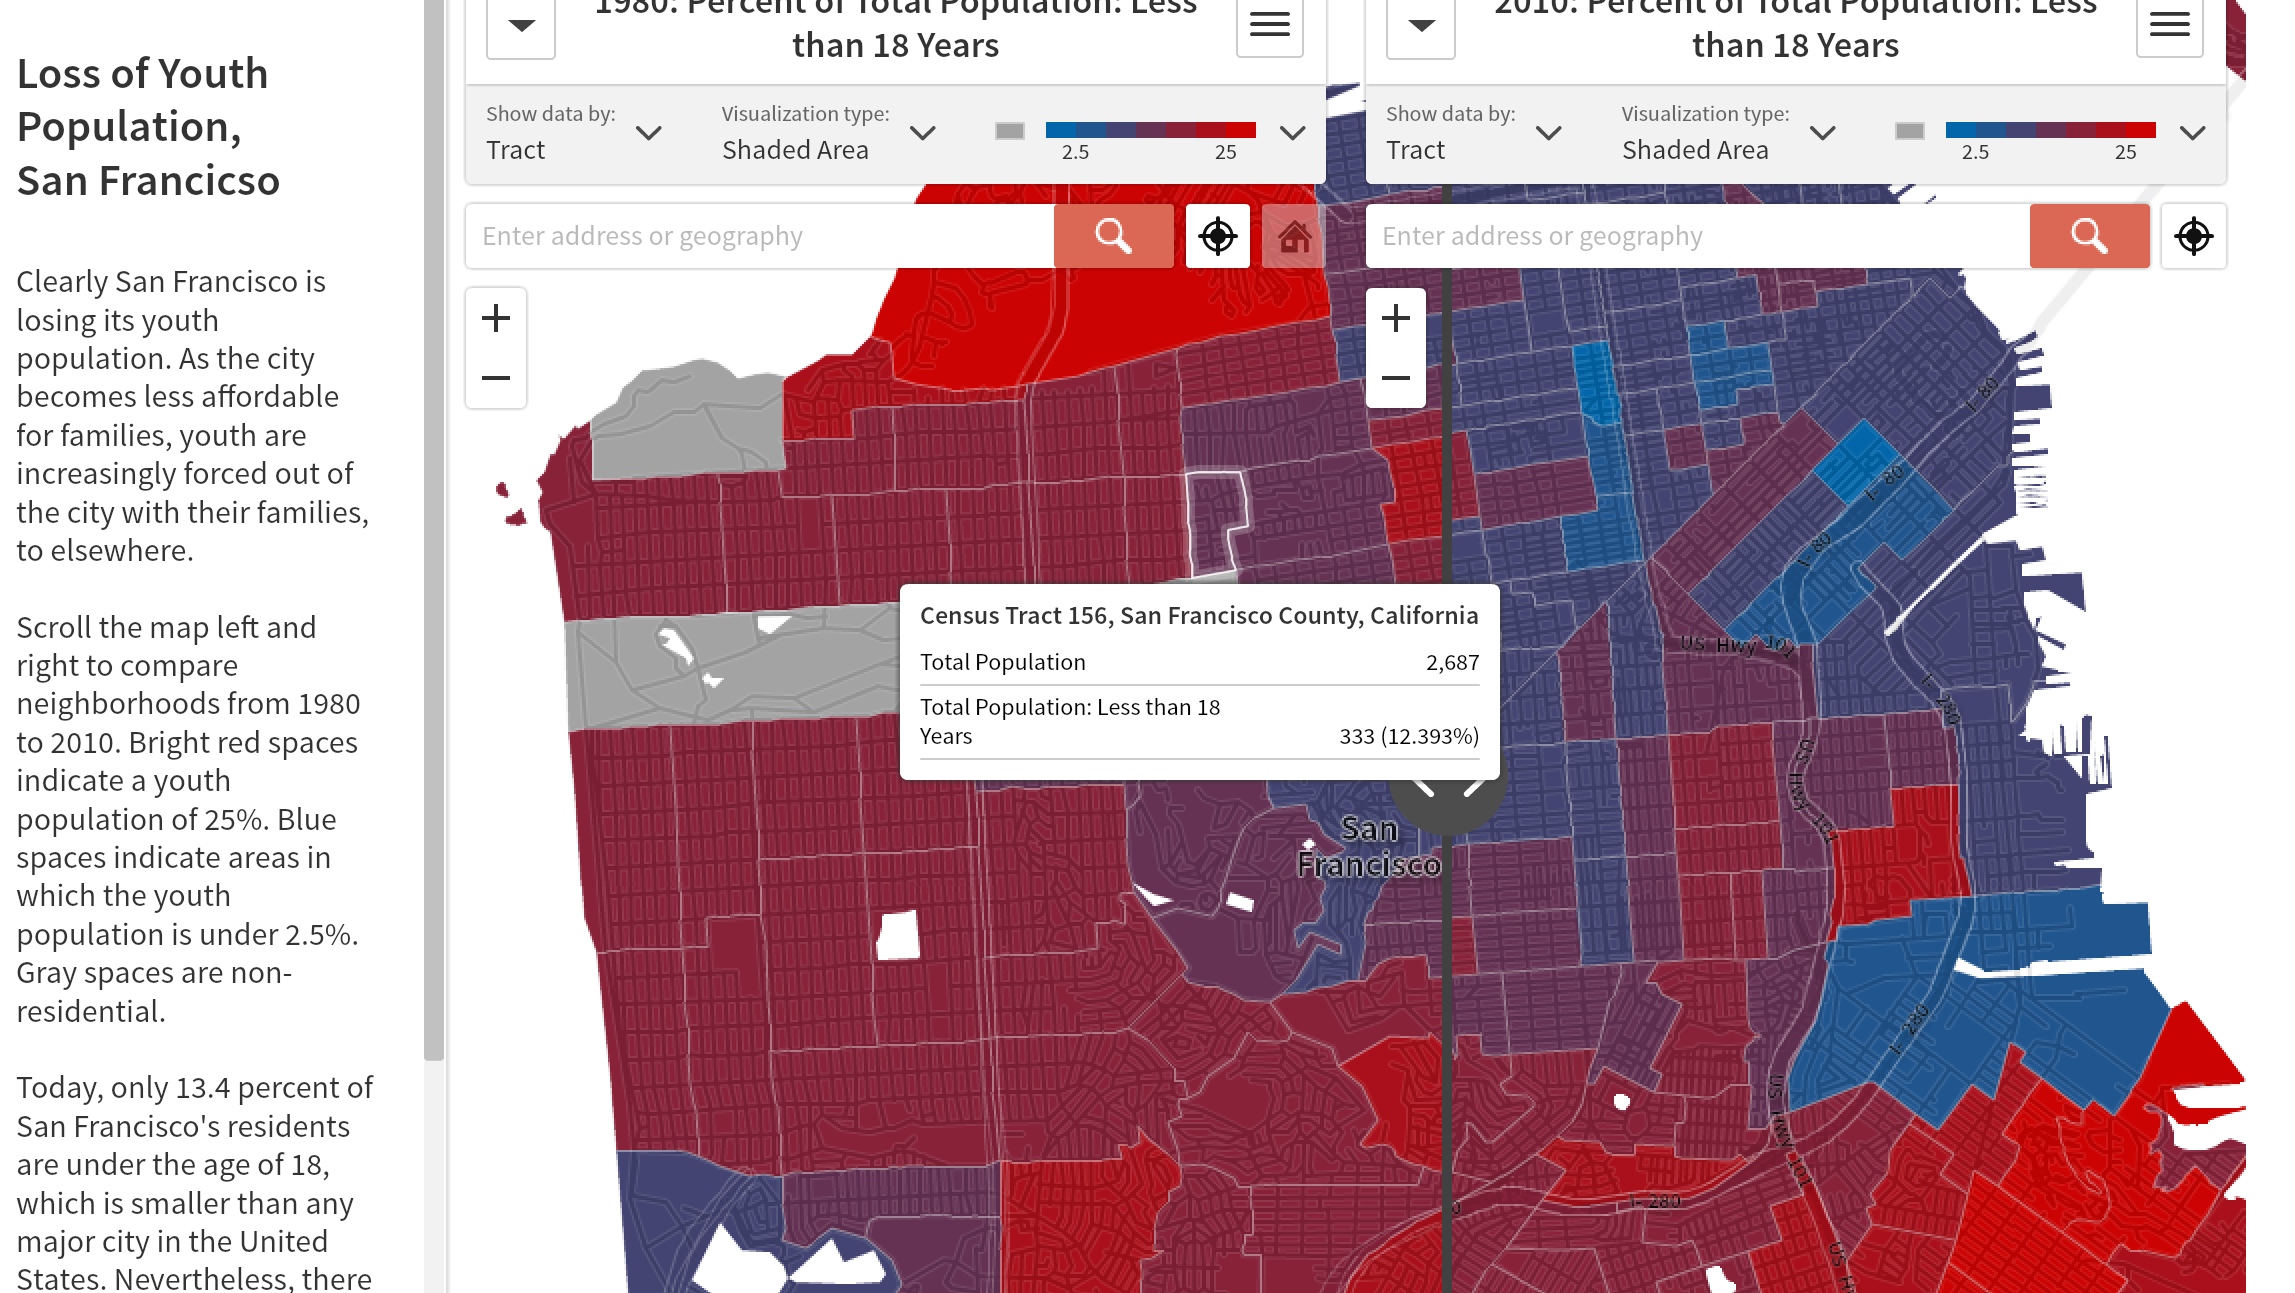 Anti-eviction Mapping Project Shows How Families Are Priced Out of SF